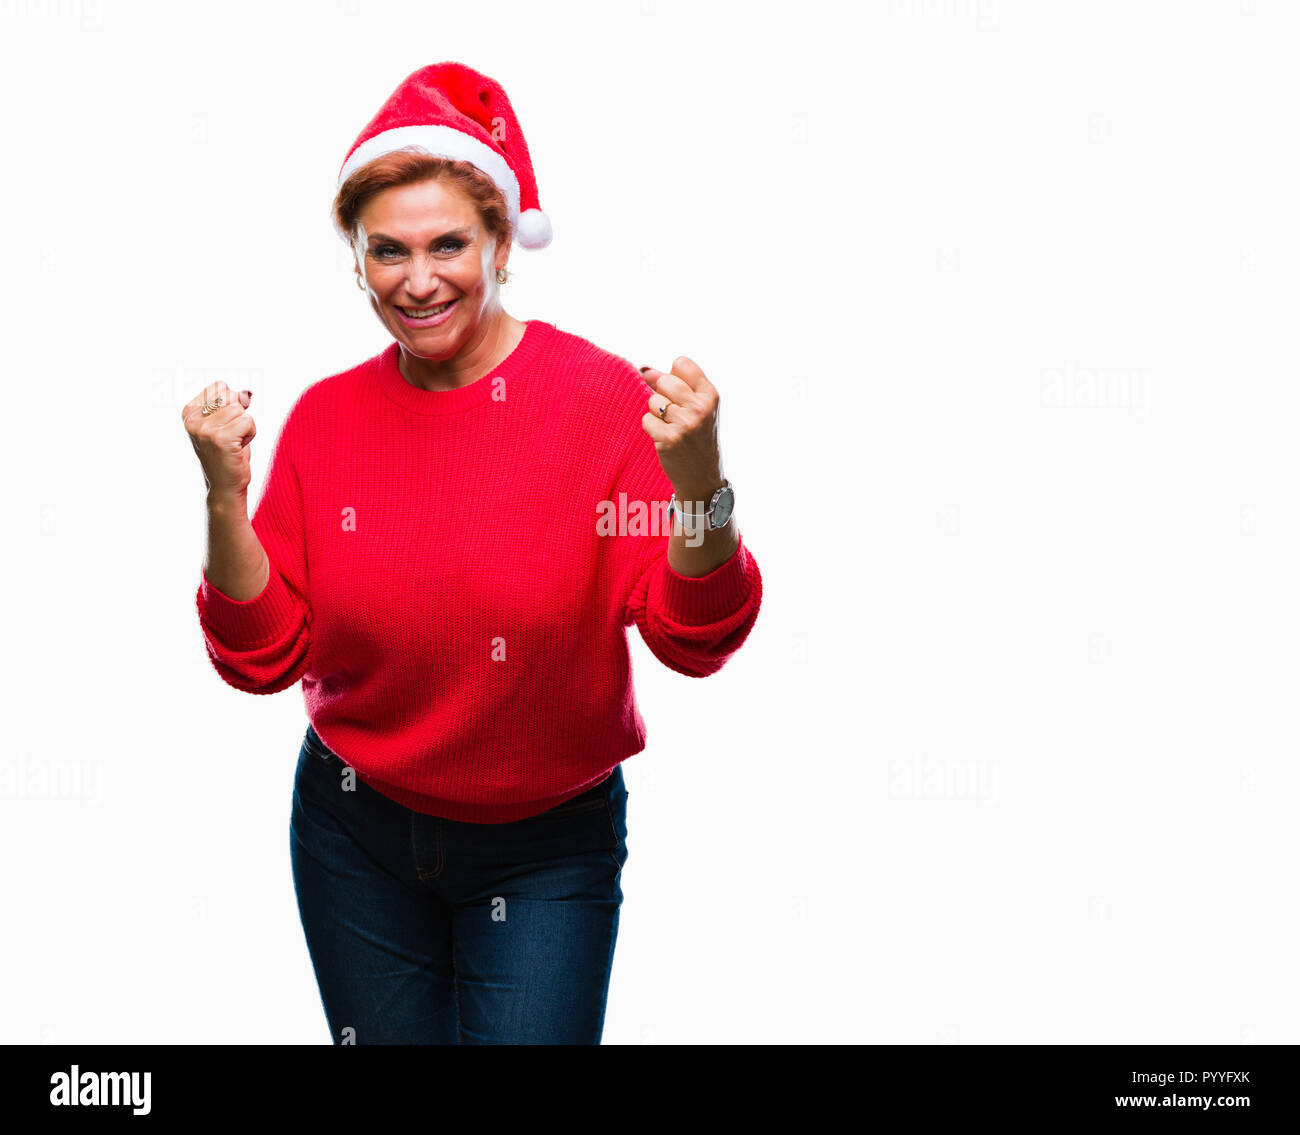 Atrractive senior caucasian redhead woman wearing christmas hat over isolated background very happy and excited doing winner gesture with arms raised, - Stock Image